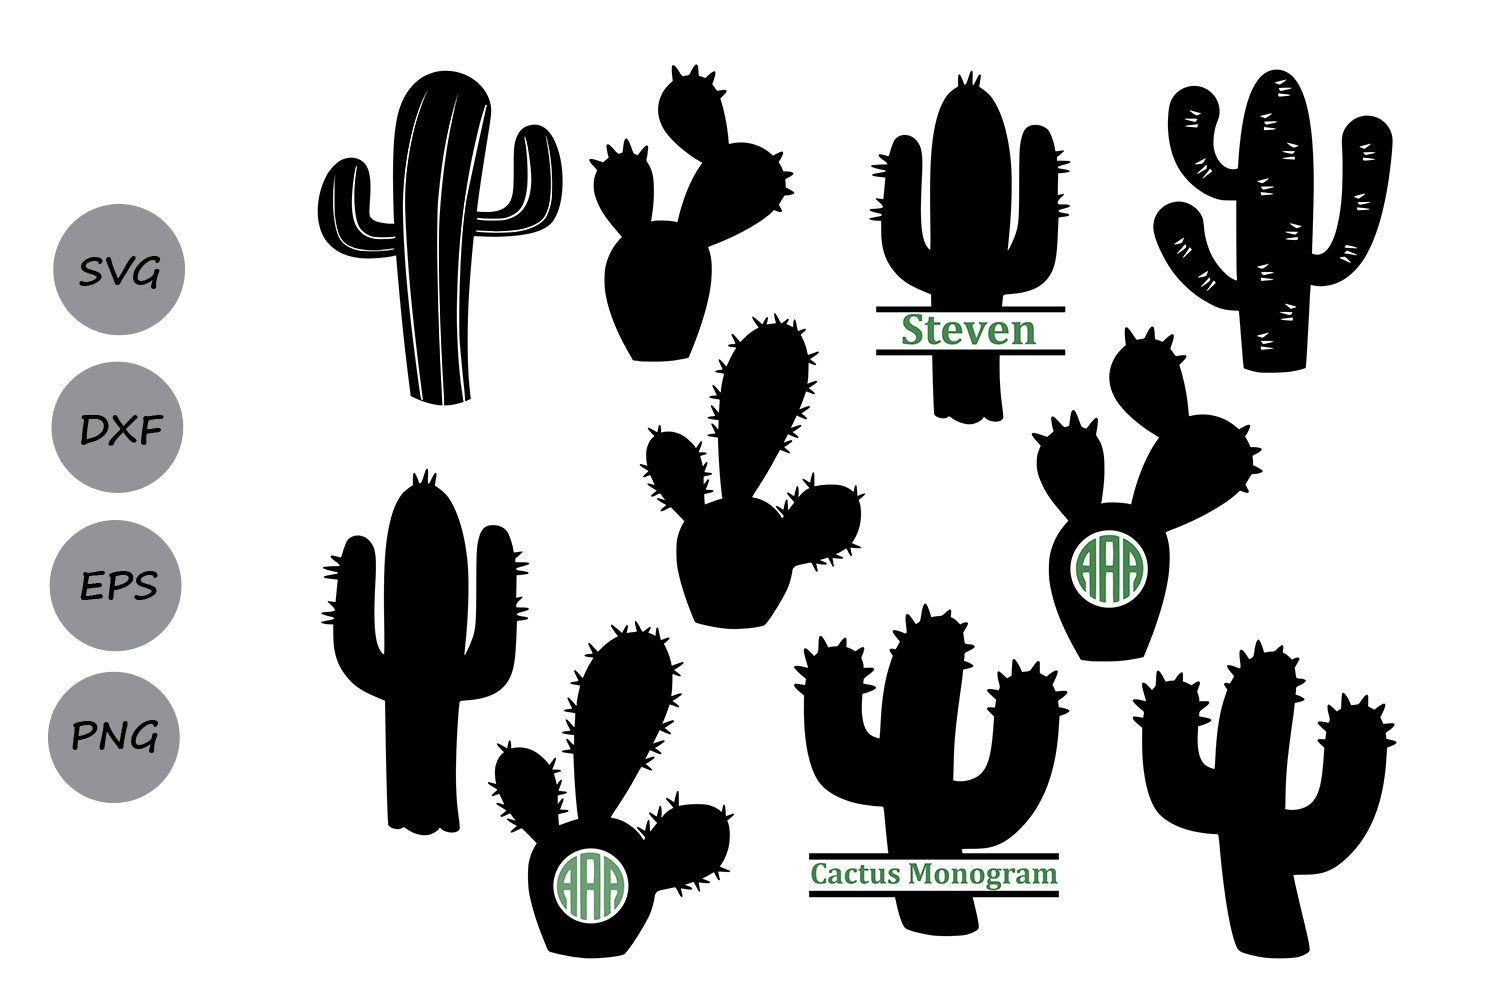 Download Free Cactus Monogram Graphic By Cosmosfineart Creative Fabrica for Cricut Explore, Silhouette and other cutting machines.